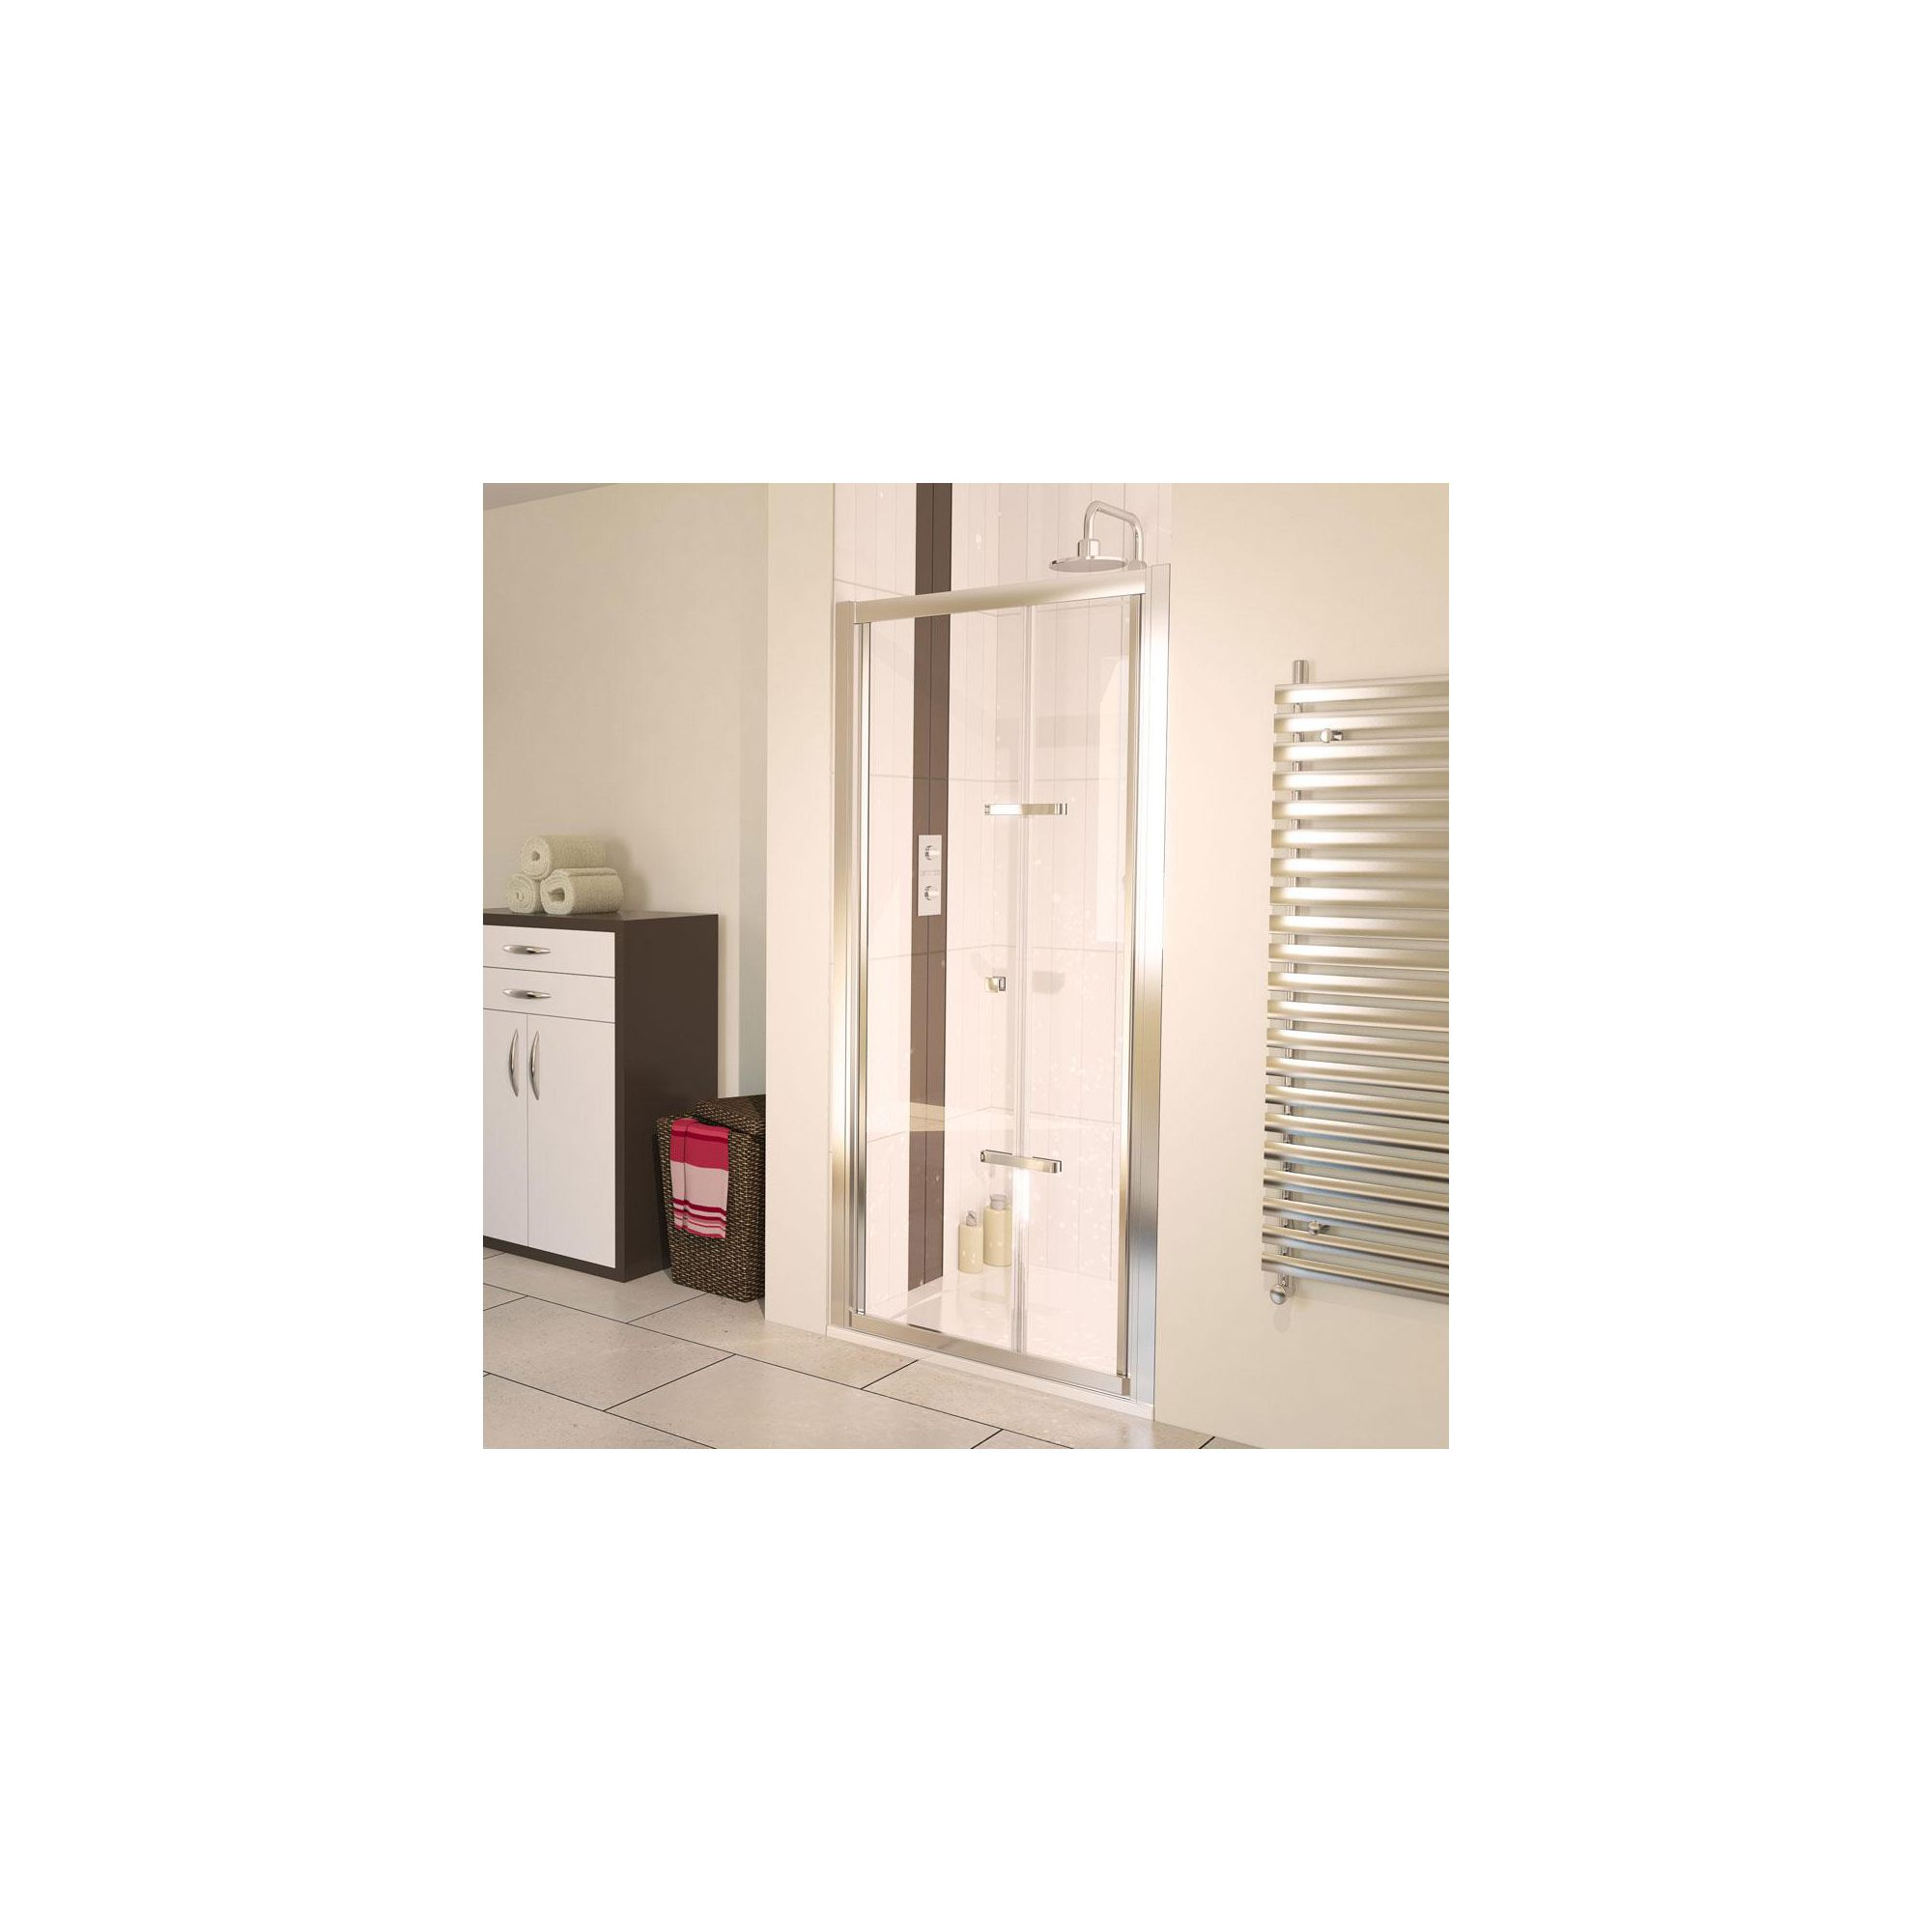 Aqualux AQUA6 Sliding Shower Door, 1500mm Wide, Polished Silver Frame, 6mm Glass at Tesco Direct